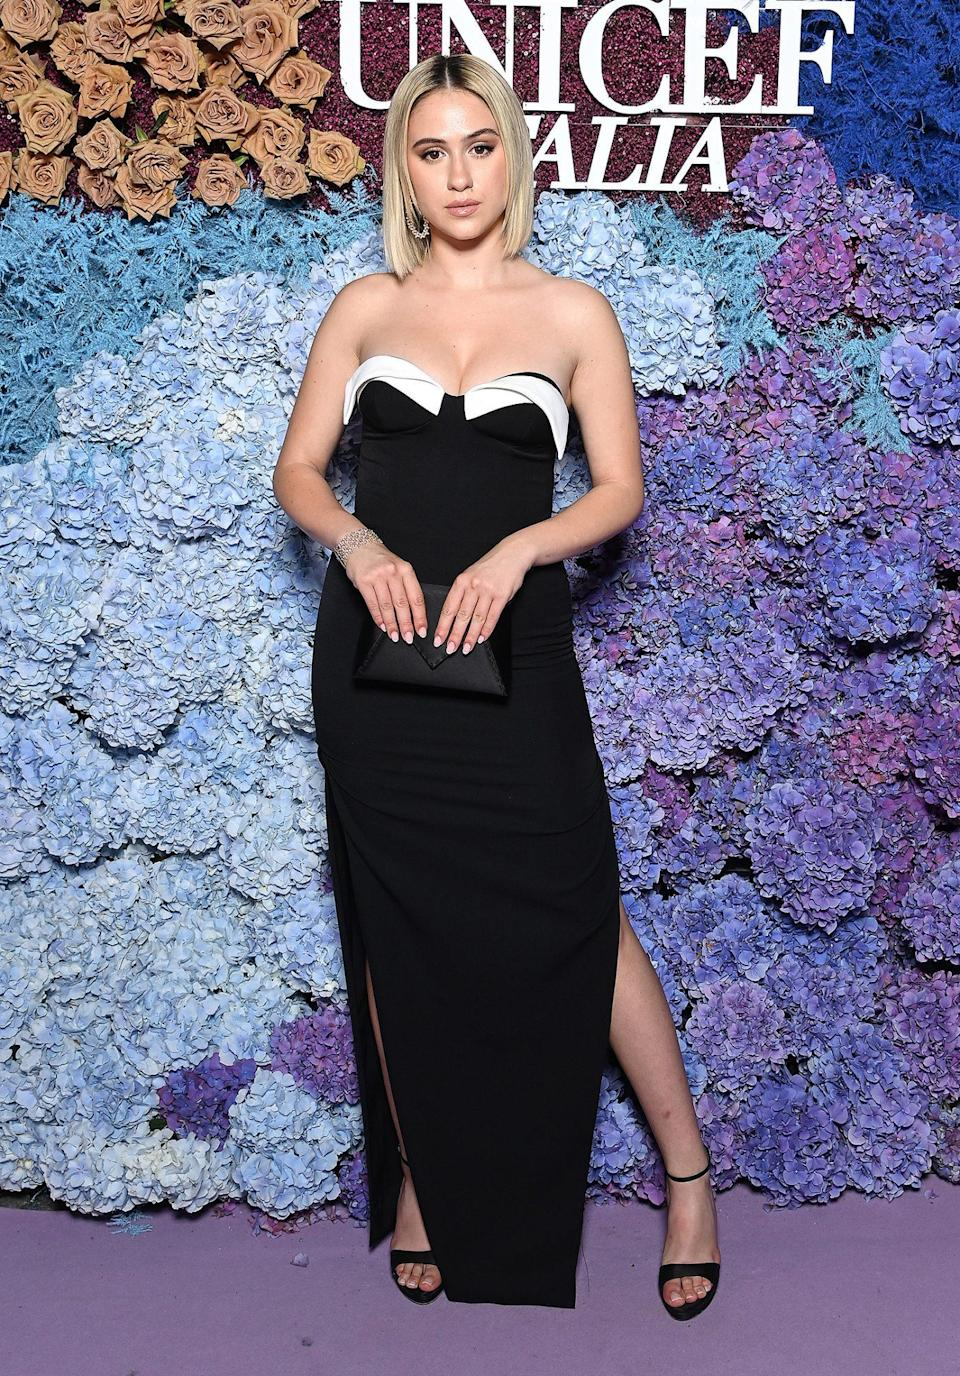 <p>wears a strapless gown with white accent at the neckline, with ankle-strap heels.</p>